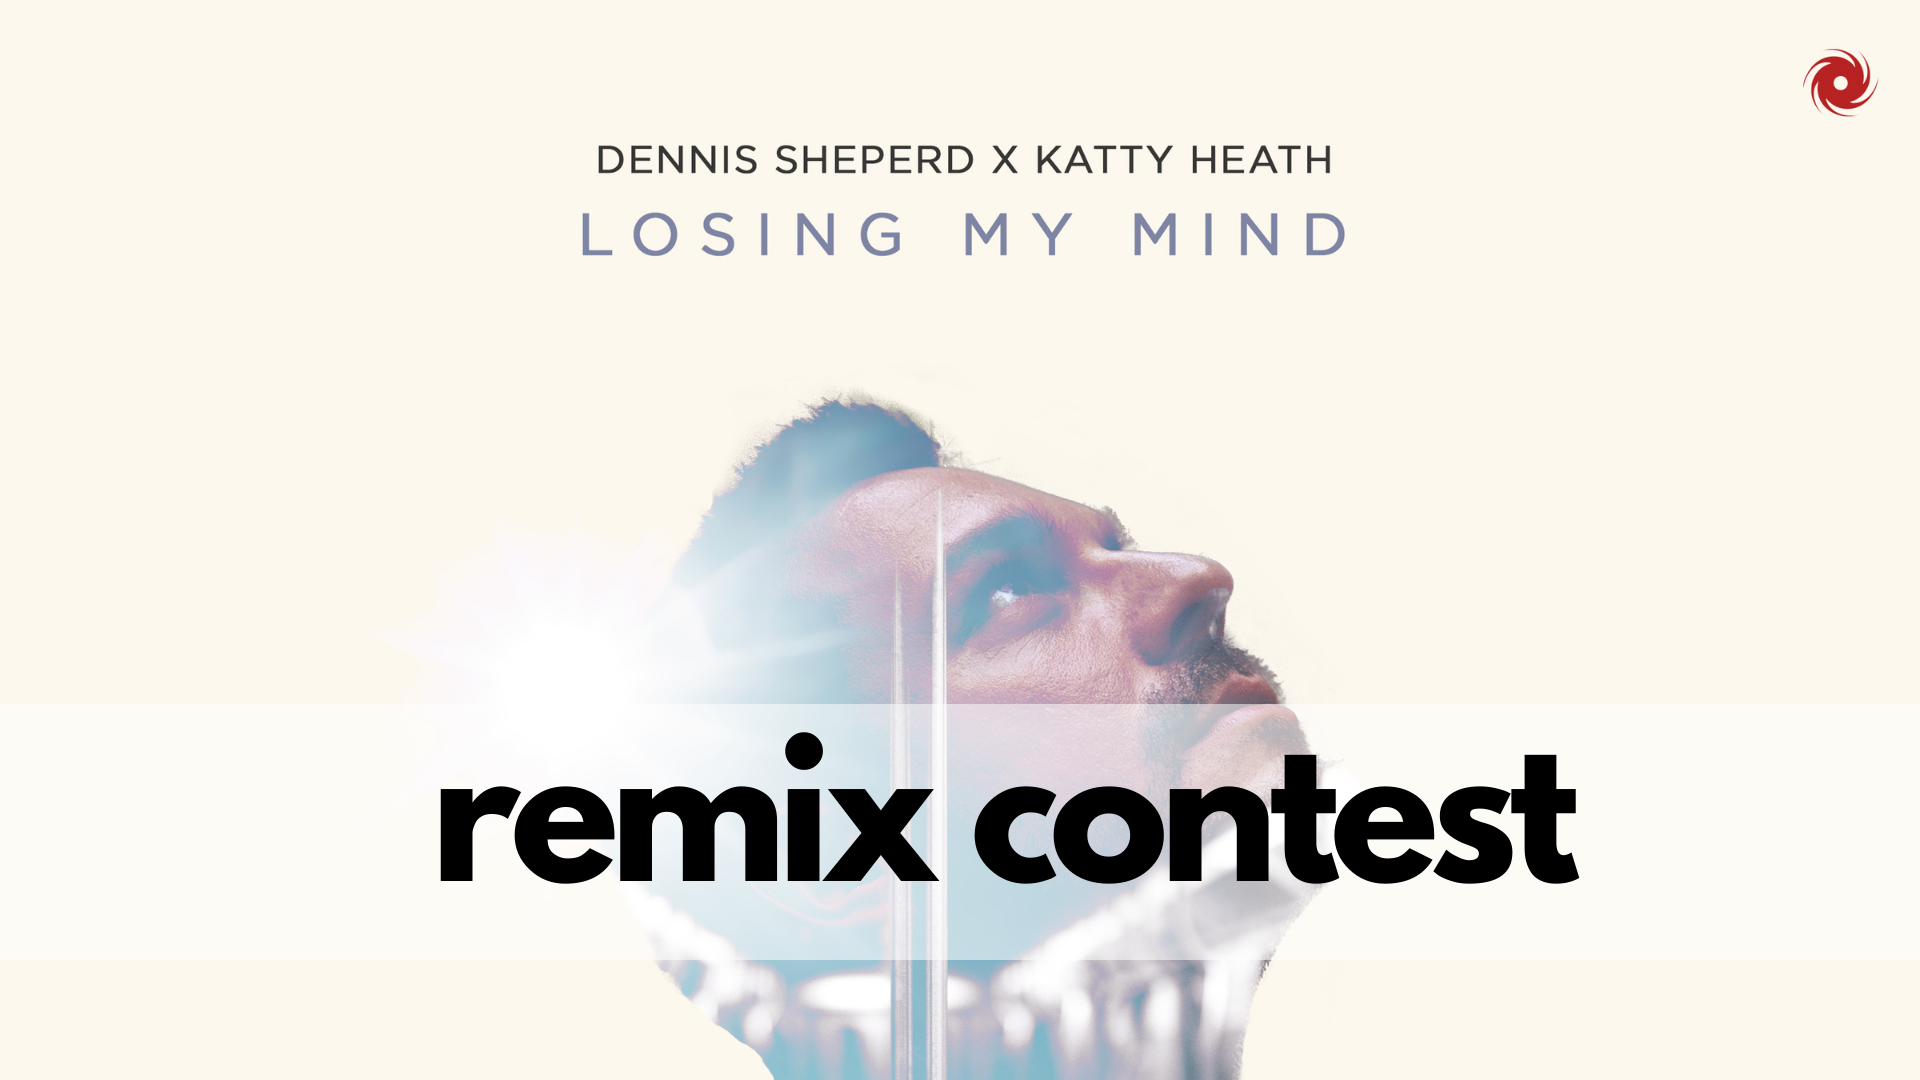 Remix Dennis Sheperd x Katty Heath – Losing My Mind